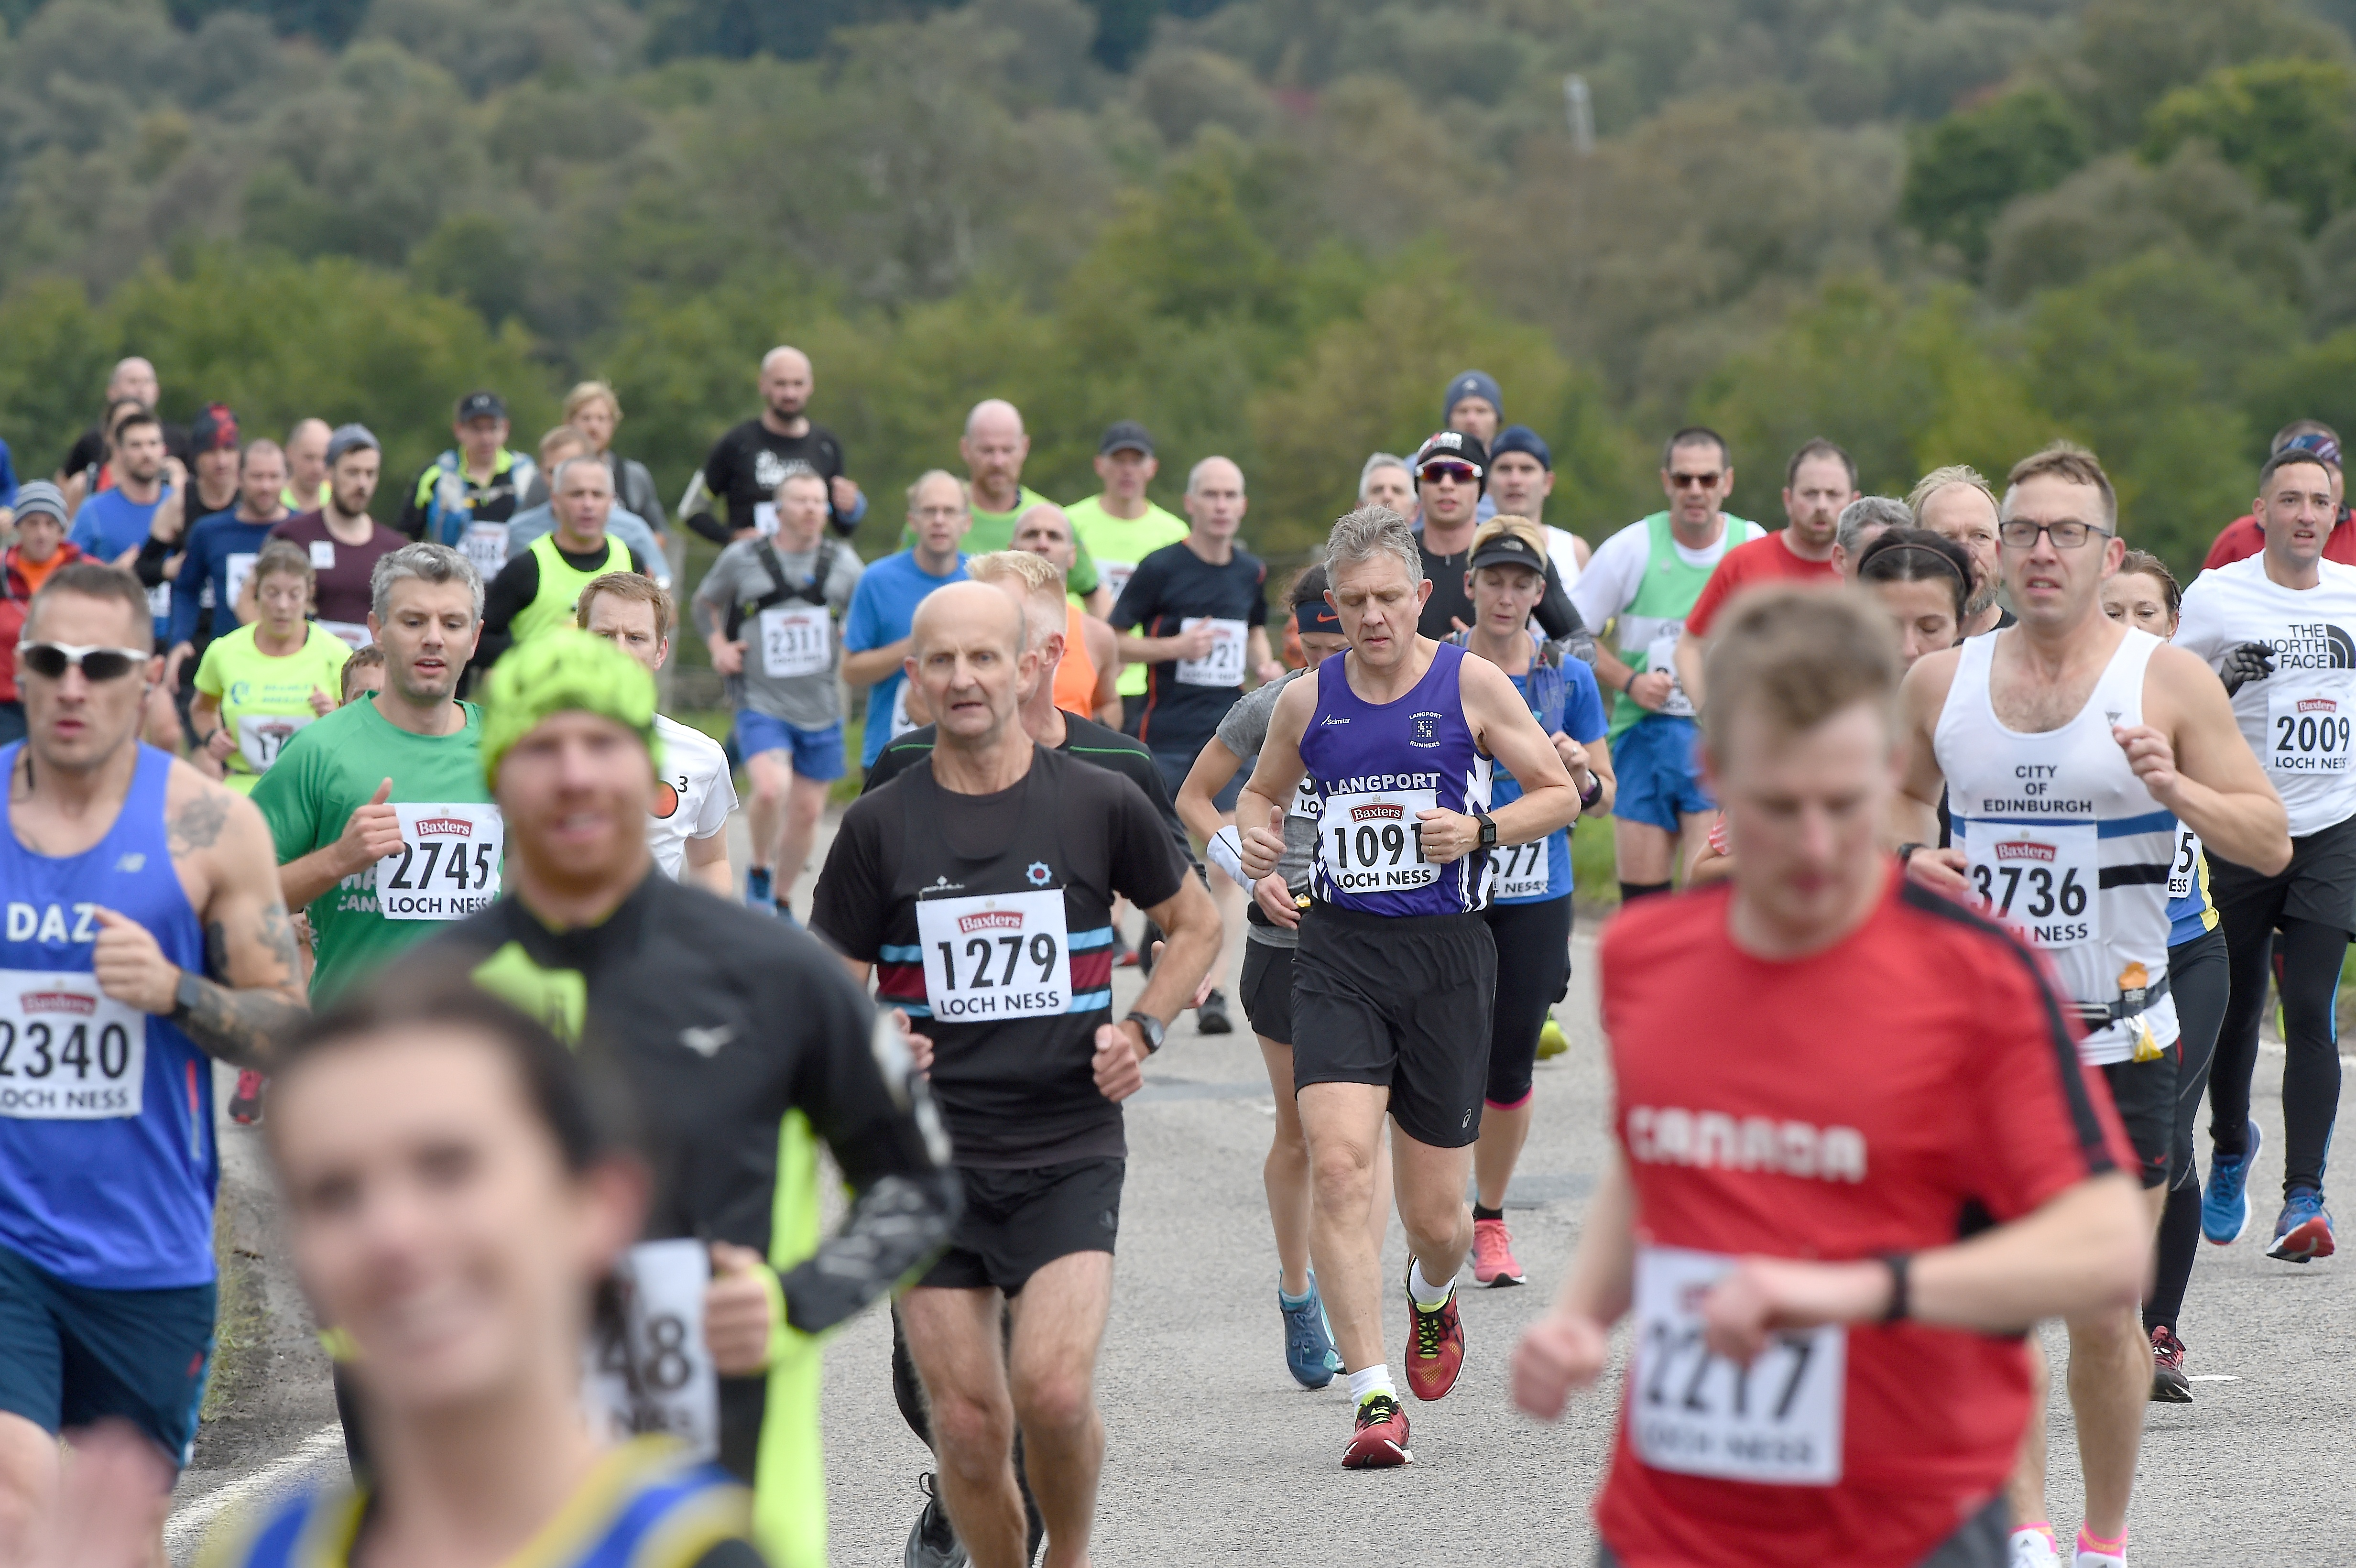 Runners during last year's Loch Ness Marathon. Picture by Sandy McCook.